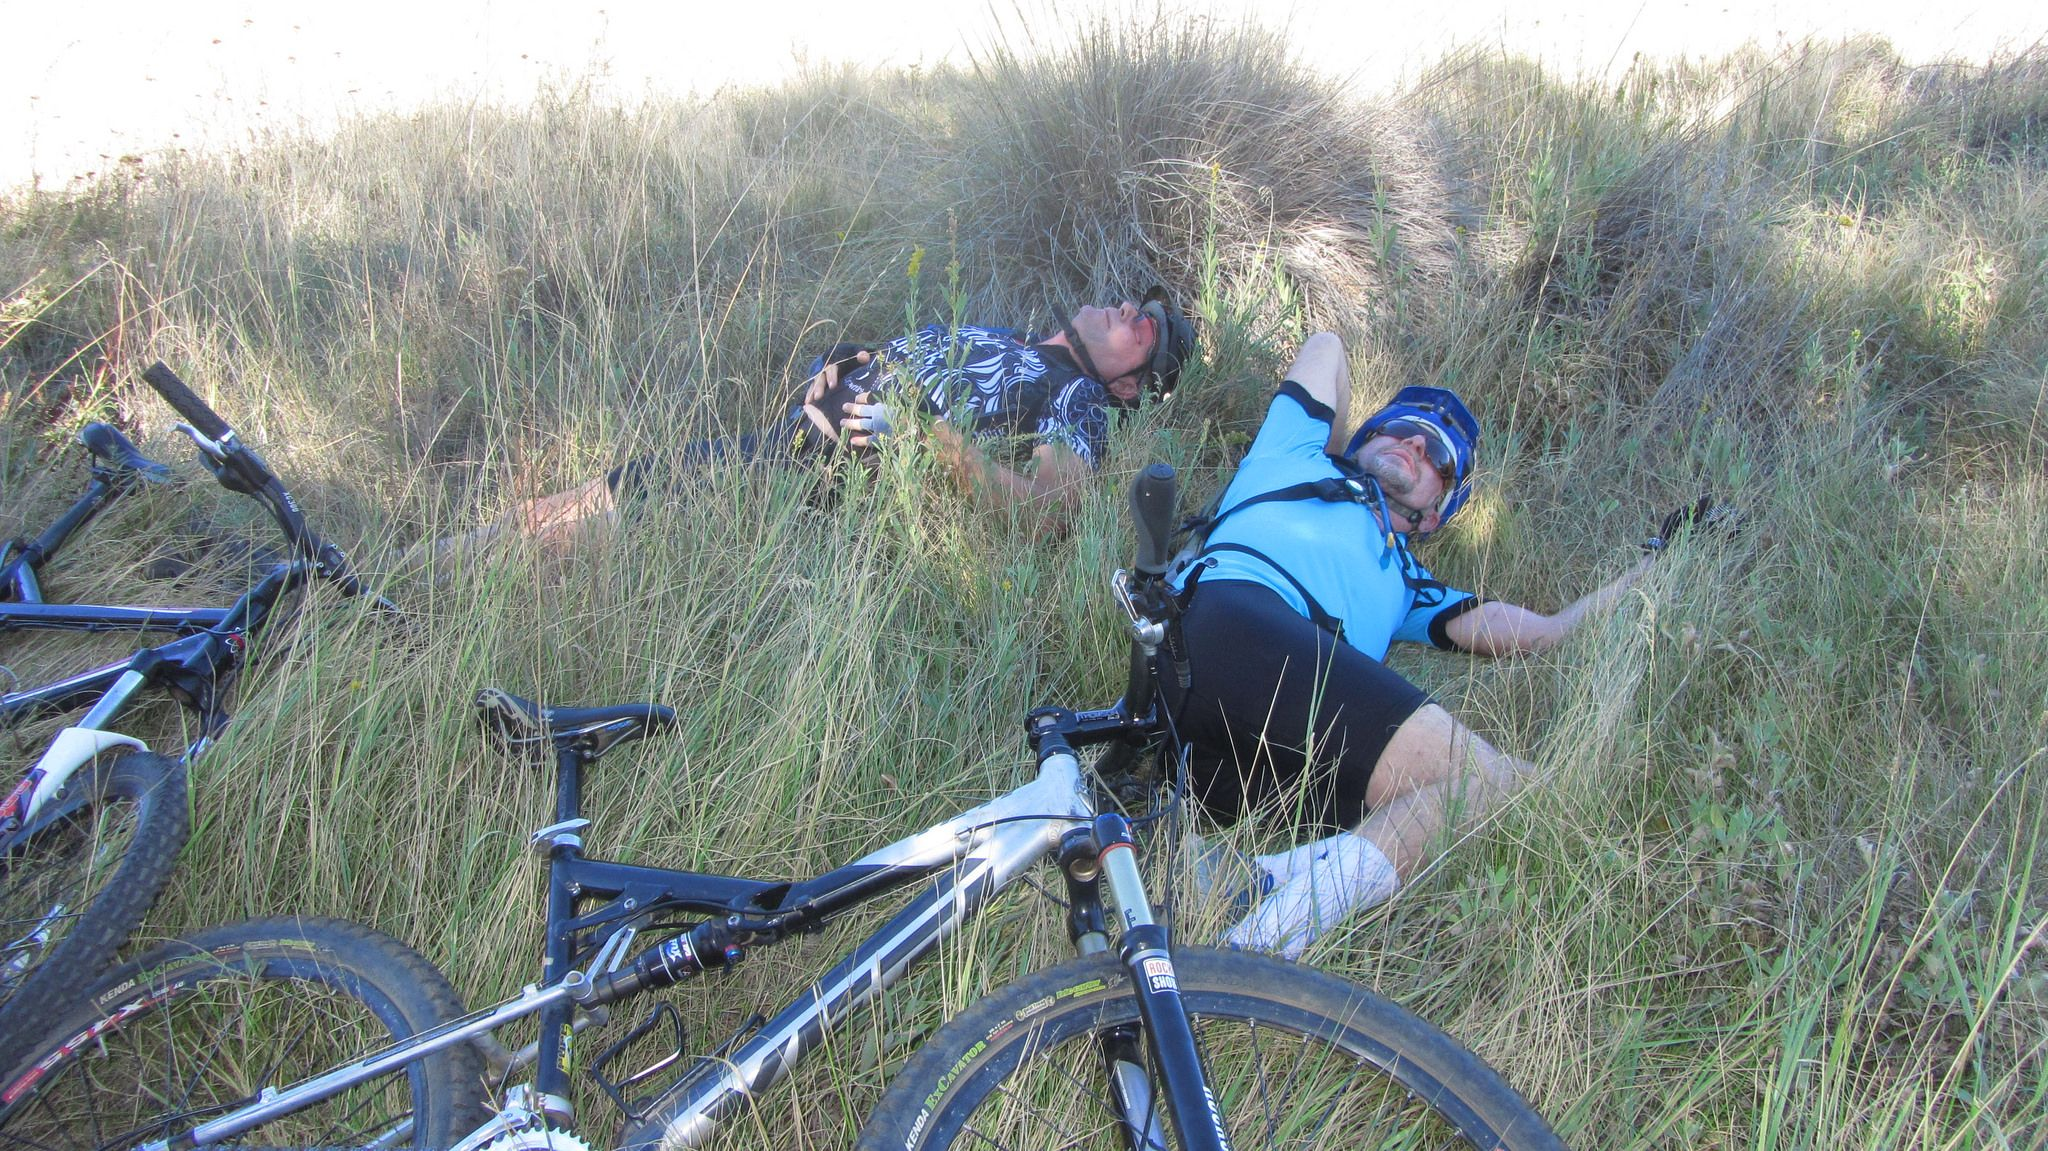 Taking a rest from the mountain bike ride, Cuyamaca Rancho - Photo by Patty Mooney of Crystal Pyramid Productions - http://sandiegovideoproduction.com/video-producers/patty-mooney/